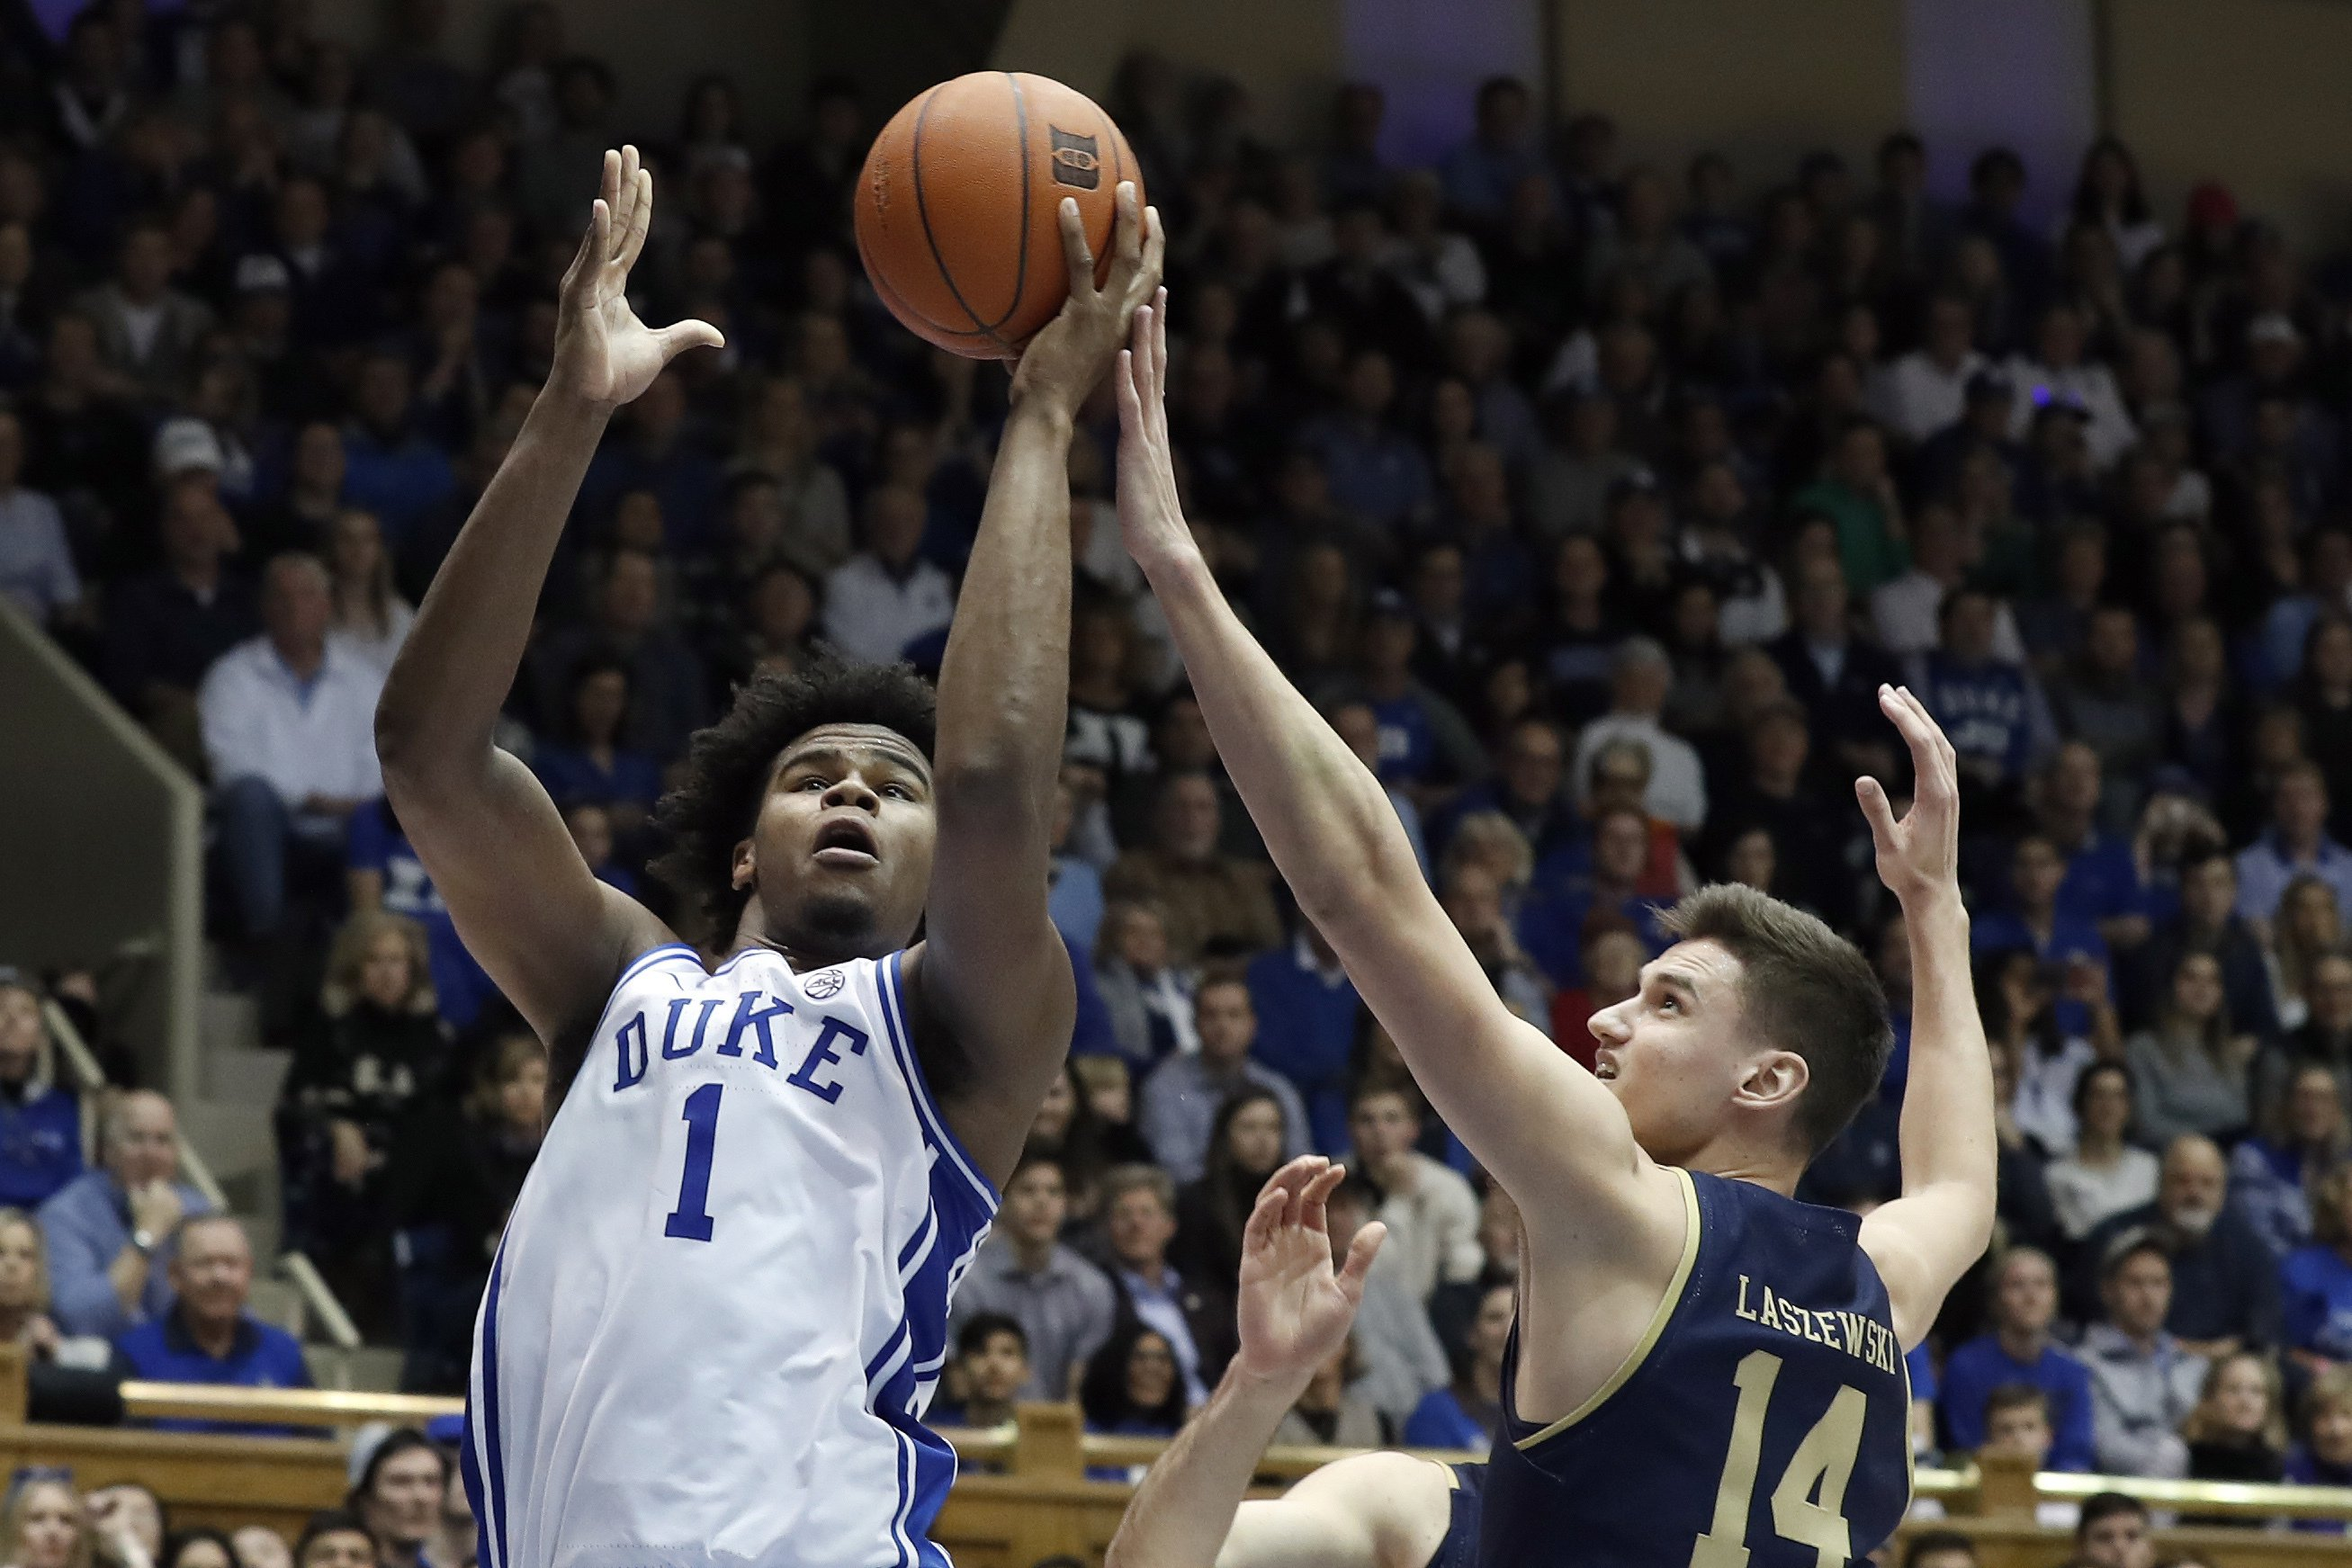 No. 7 Duke downs Notre Dame 94-60 behind 21 points by Carey